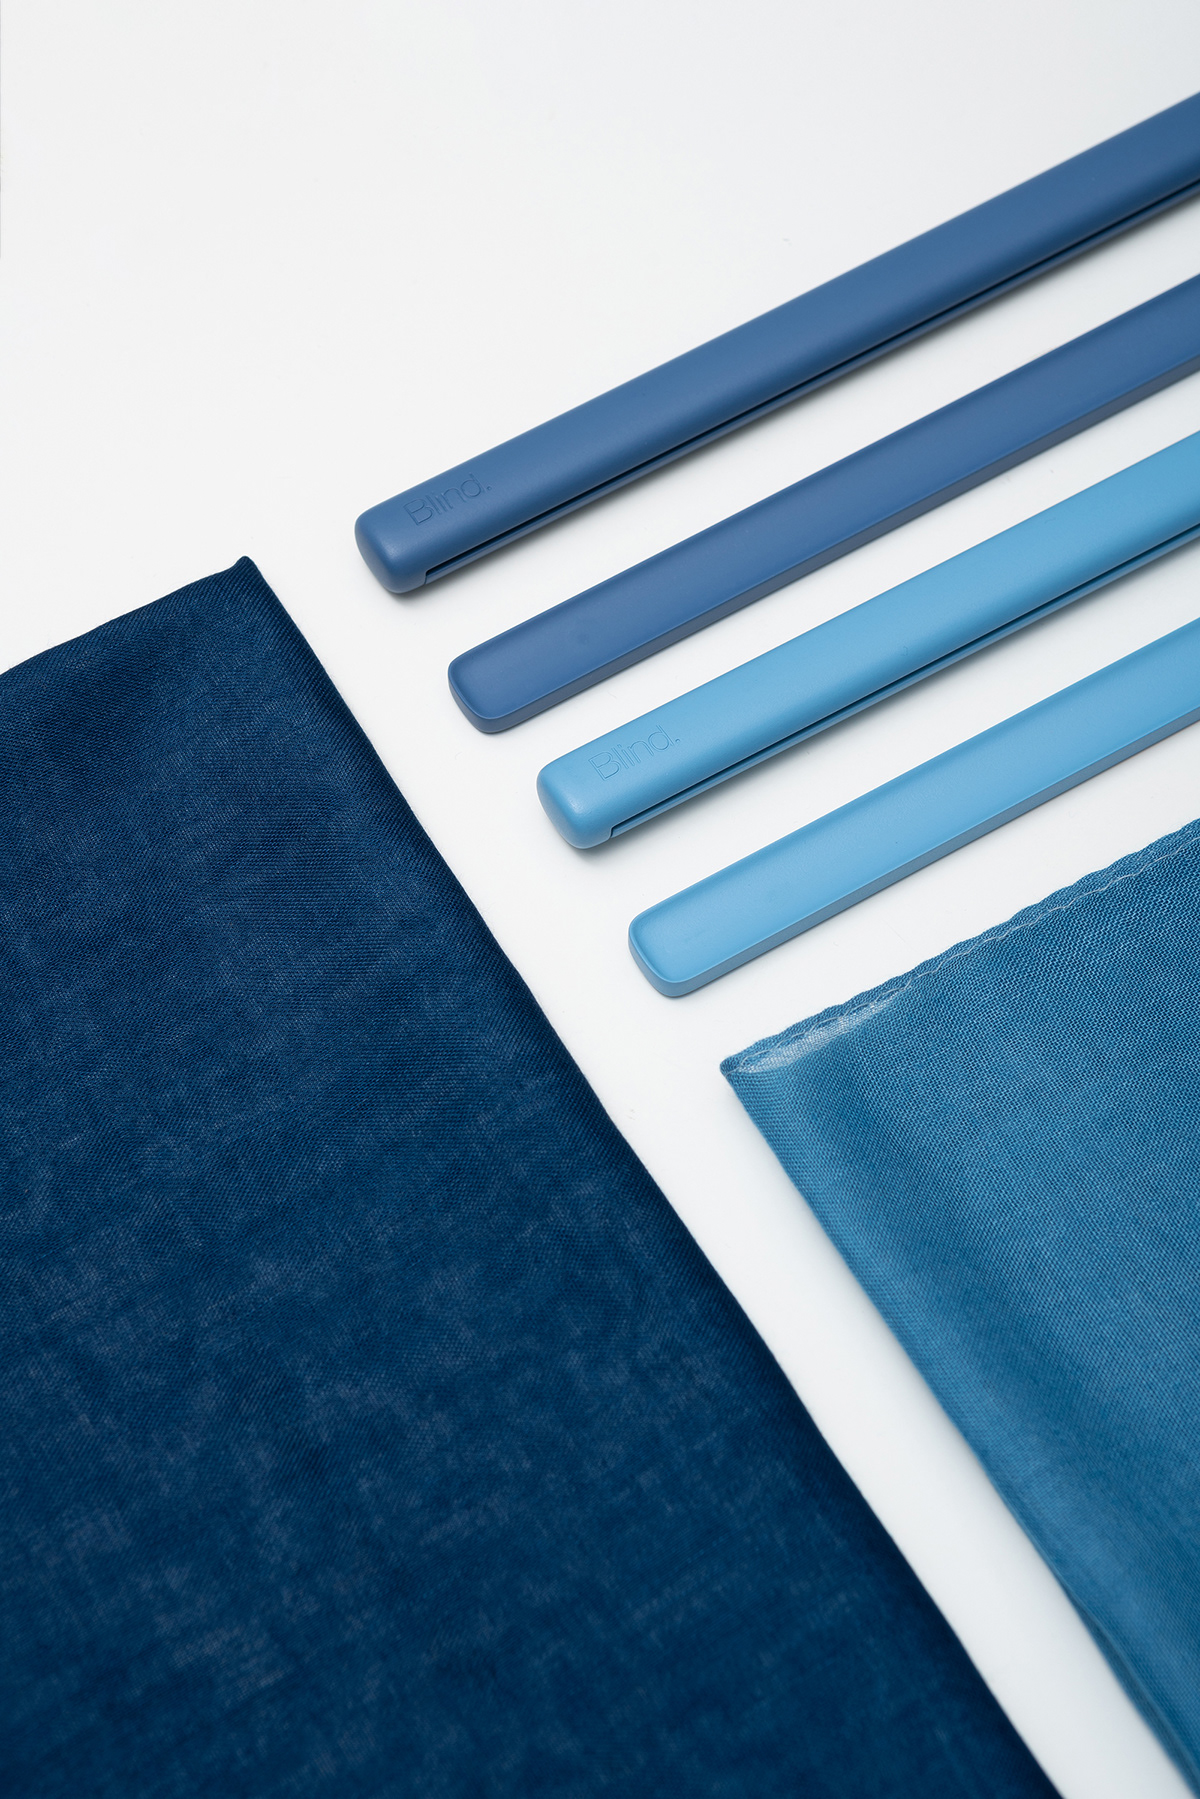 blind fabric material Naturial Interior product bkid